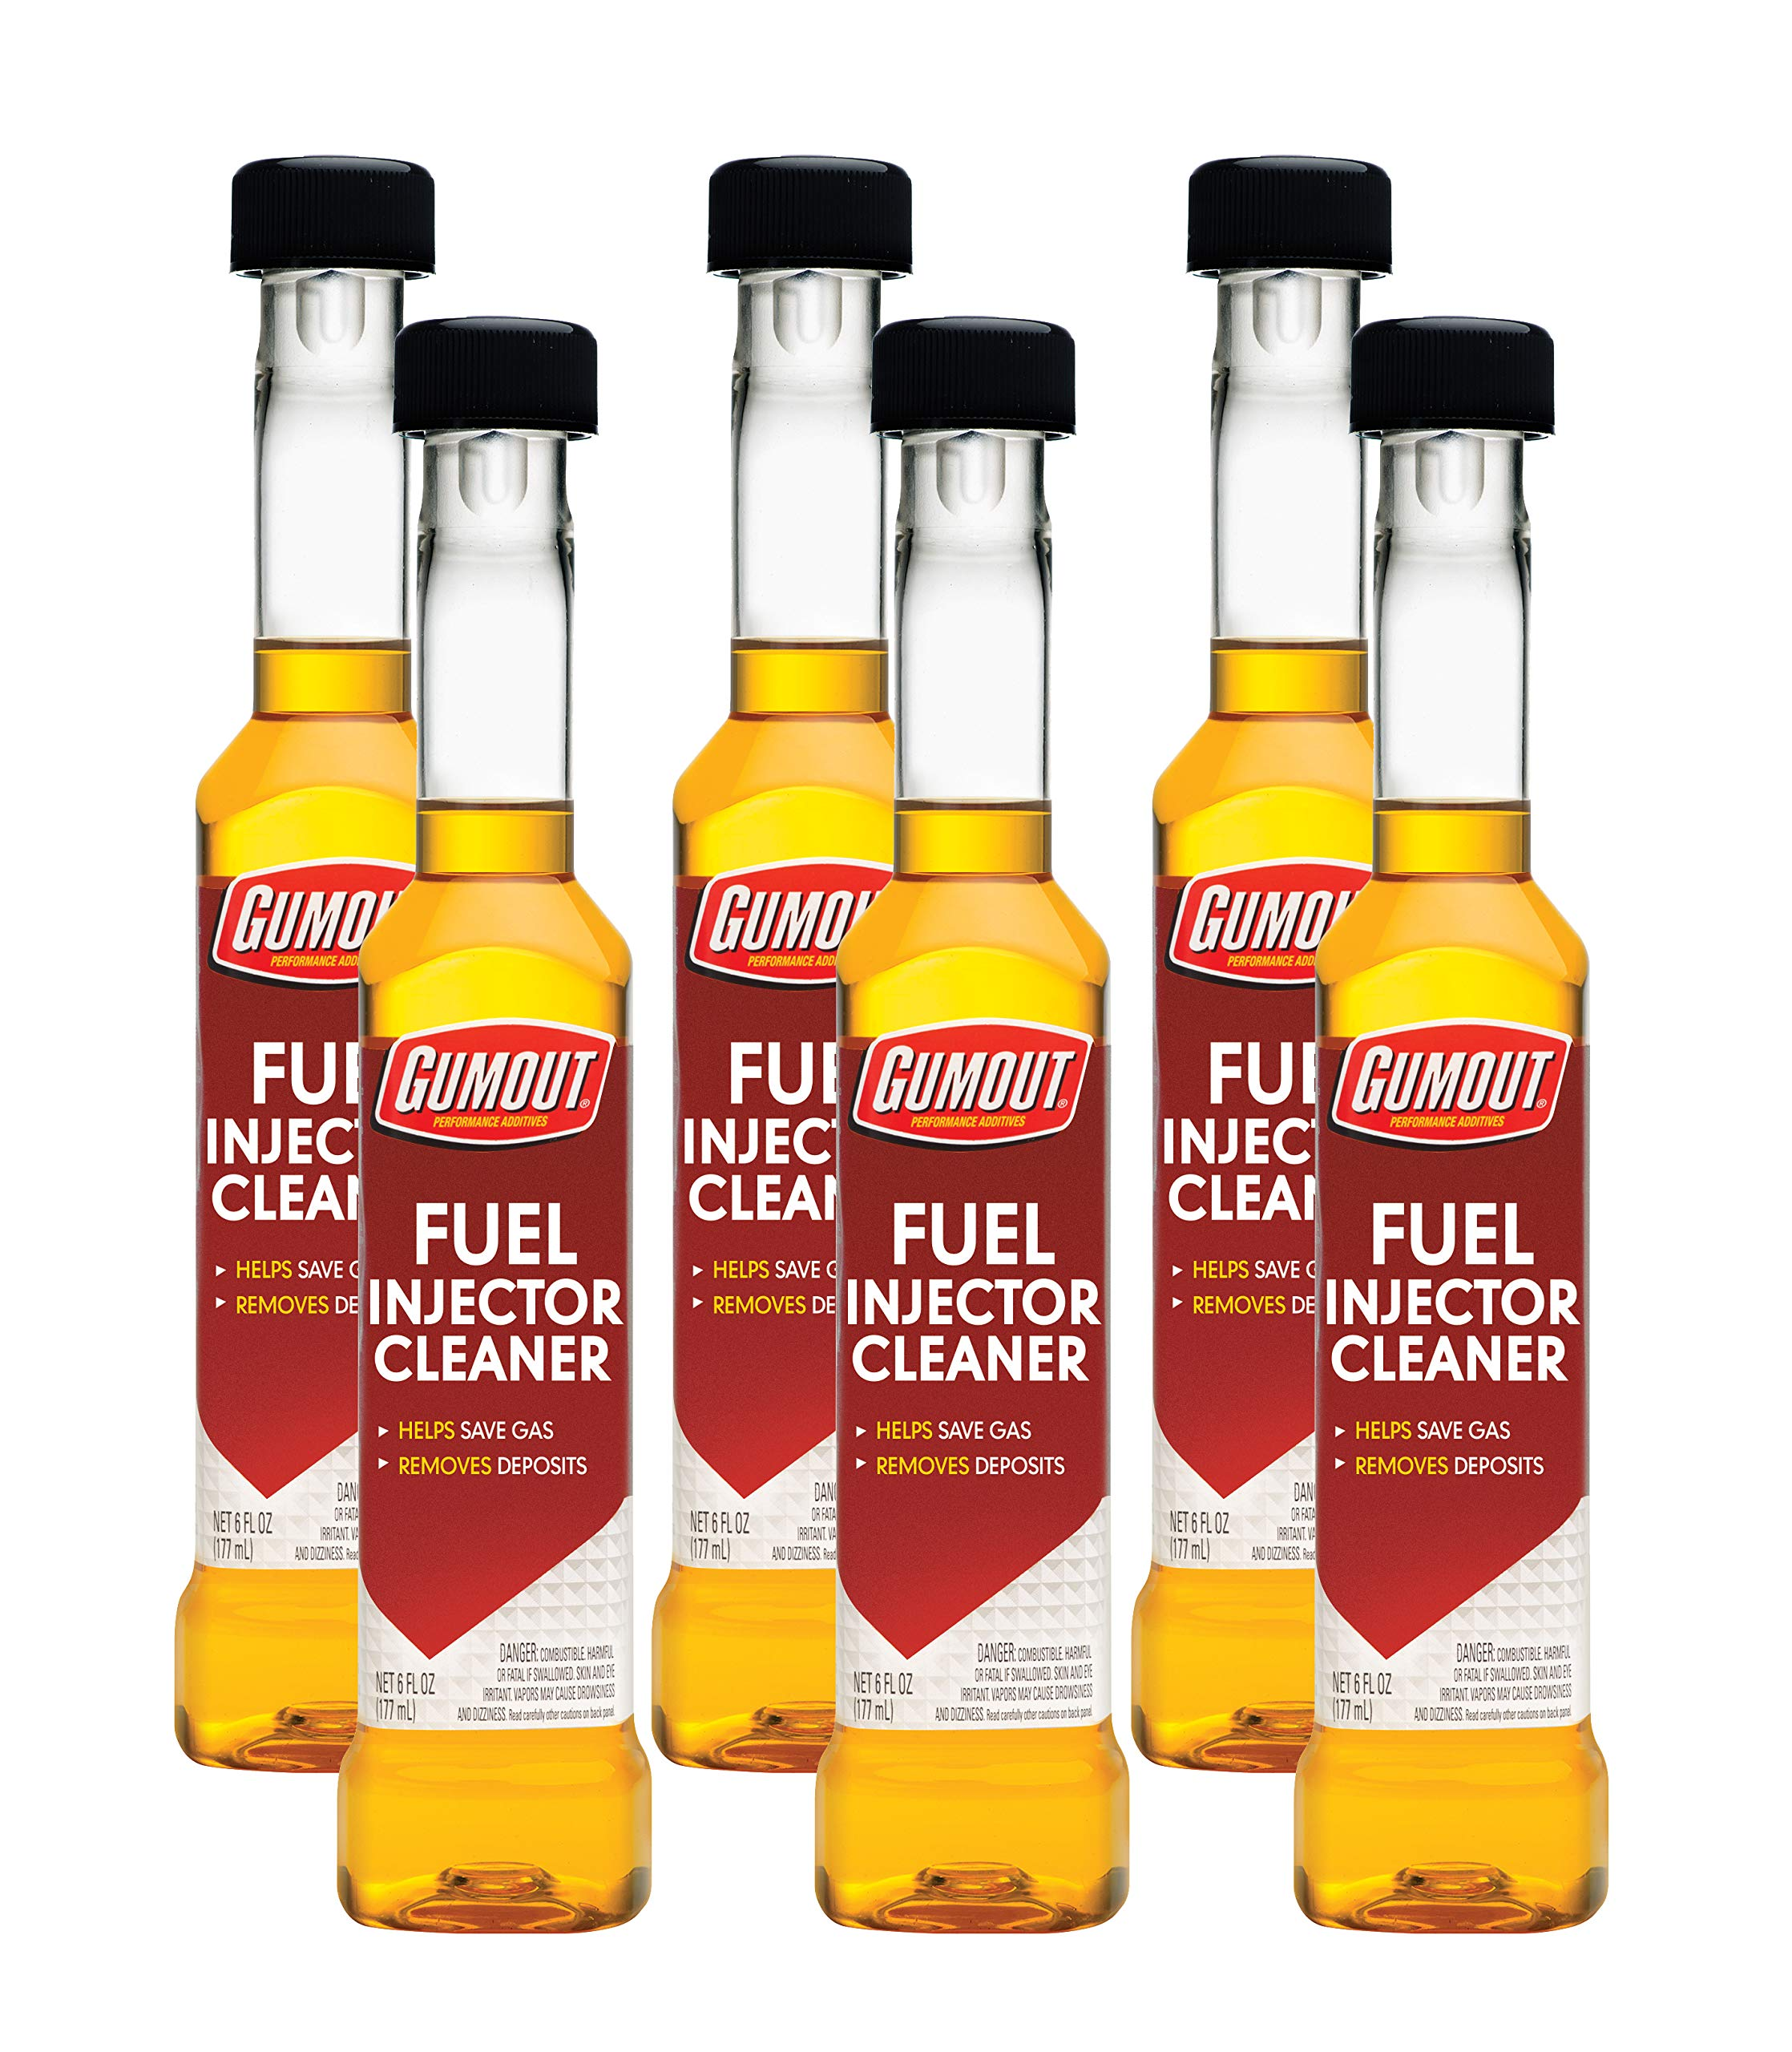 Gumout 510019 Fuel Injector Cleaner, 6 oz. (Pack of 6) by Gumout